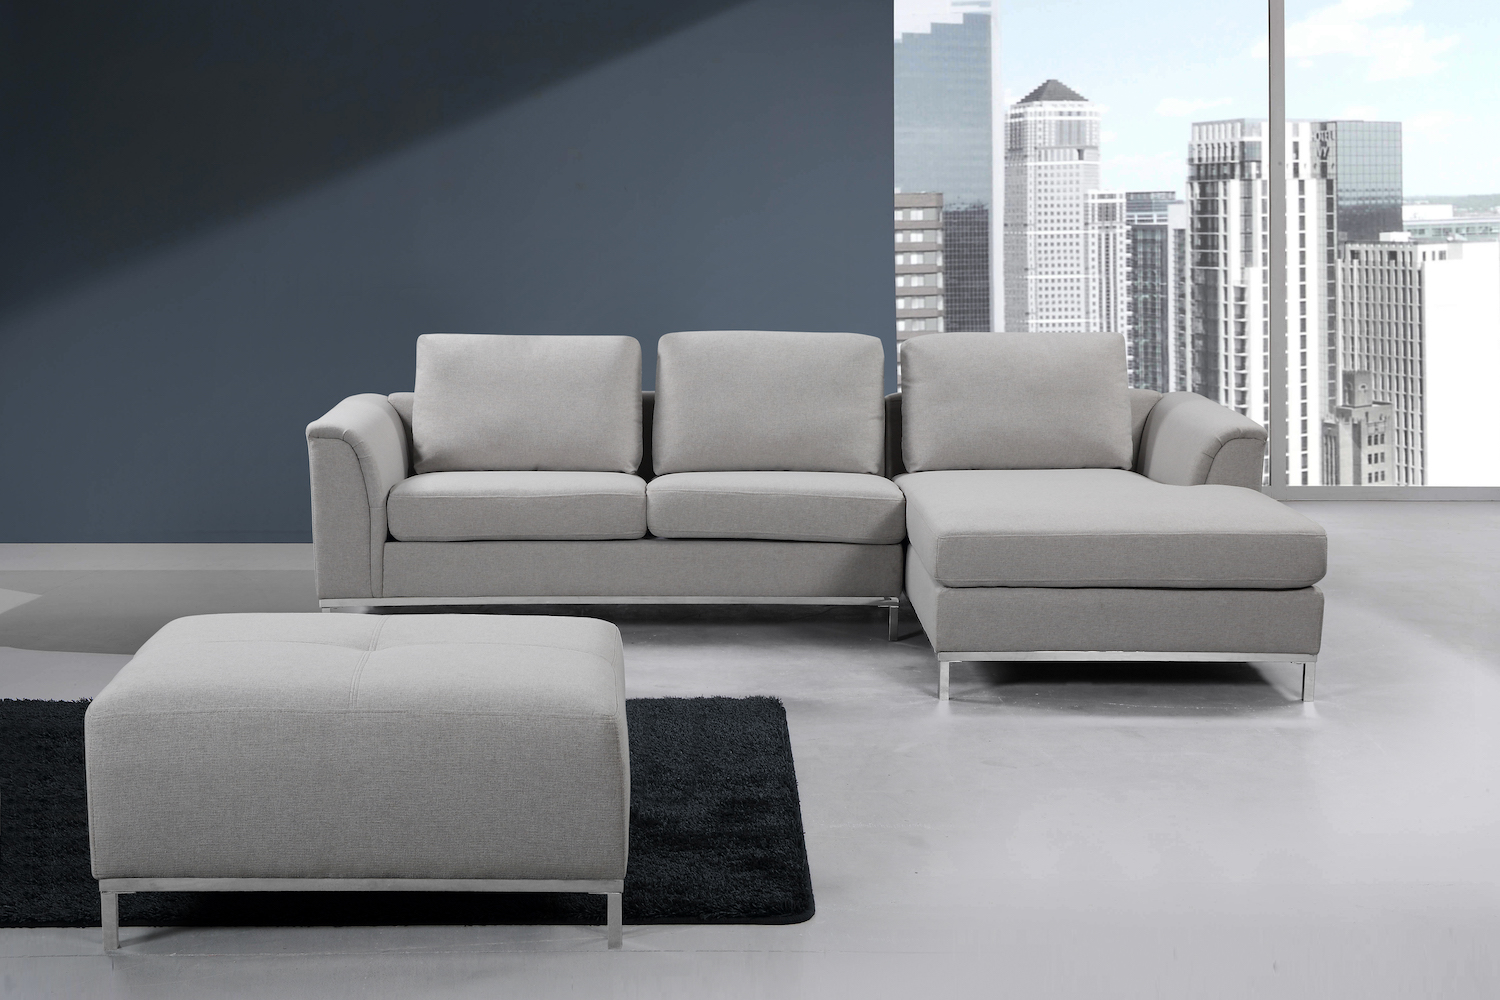 Low Profile Light Grey Fabric Sectional Sofa Furniture That Looks